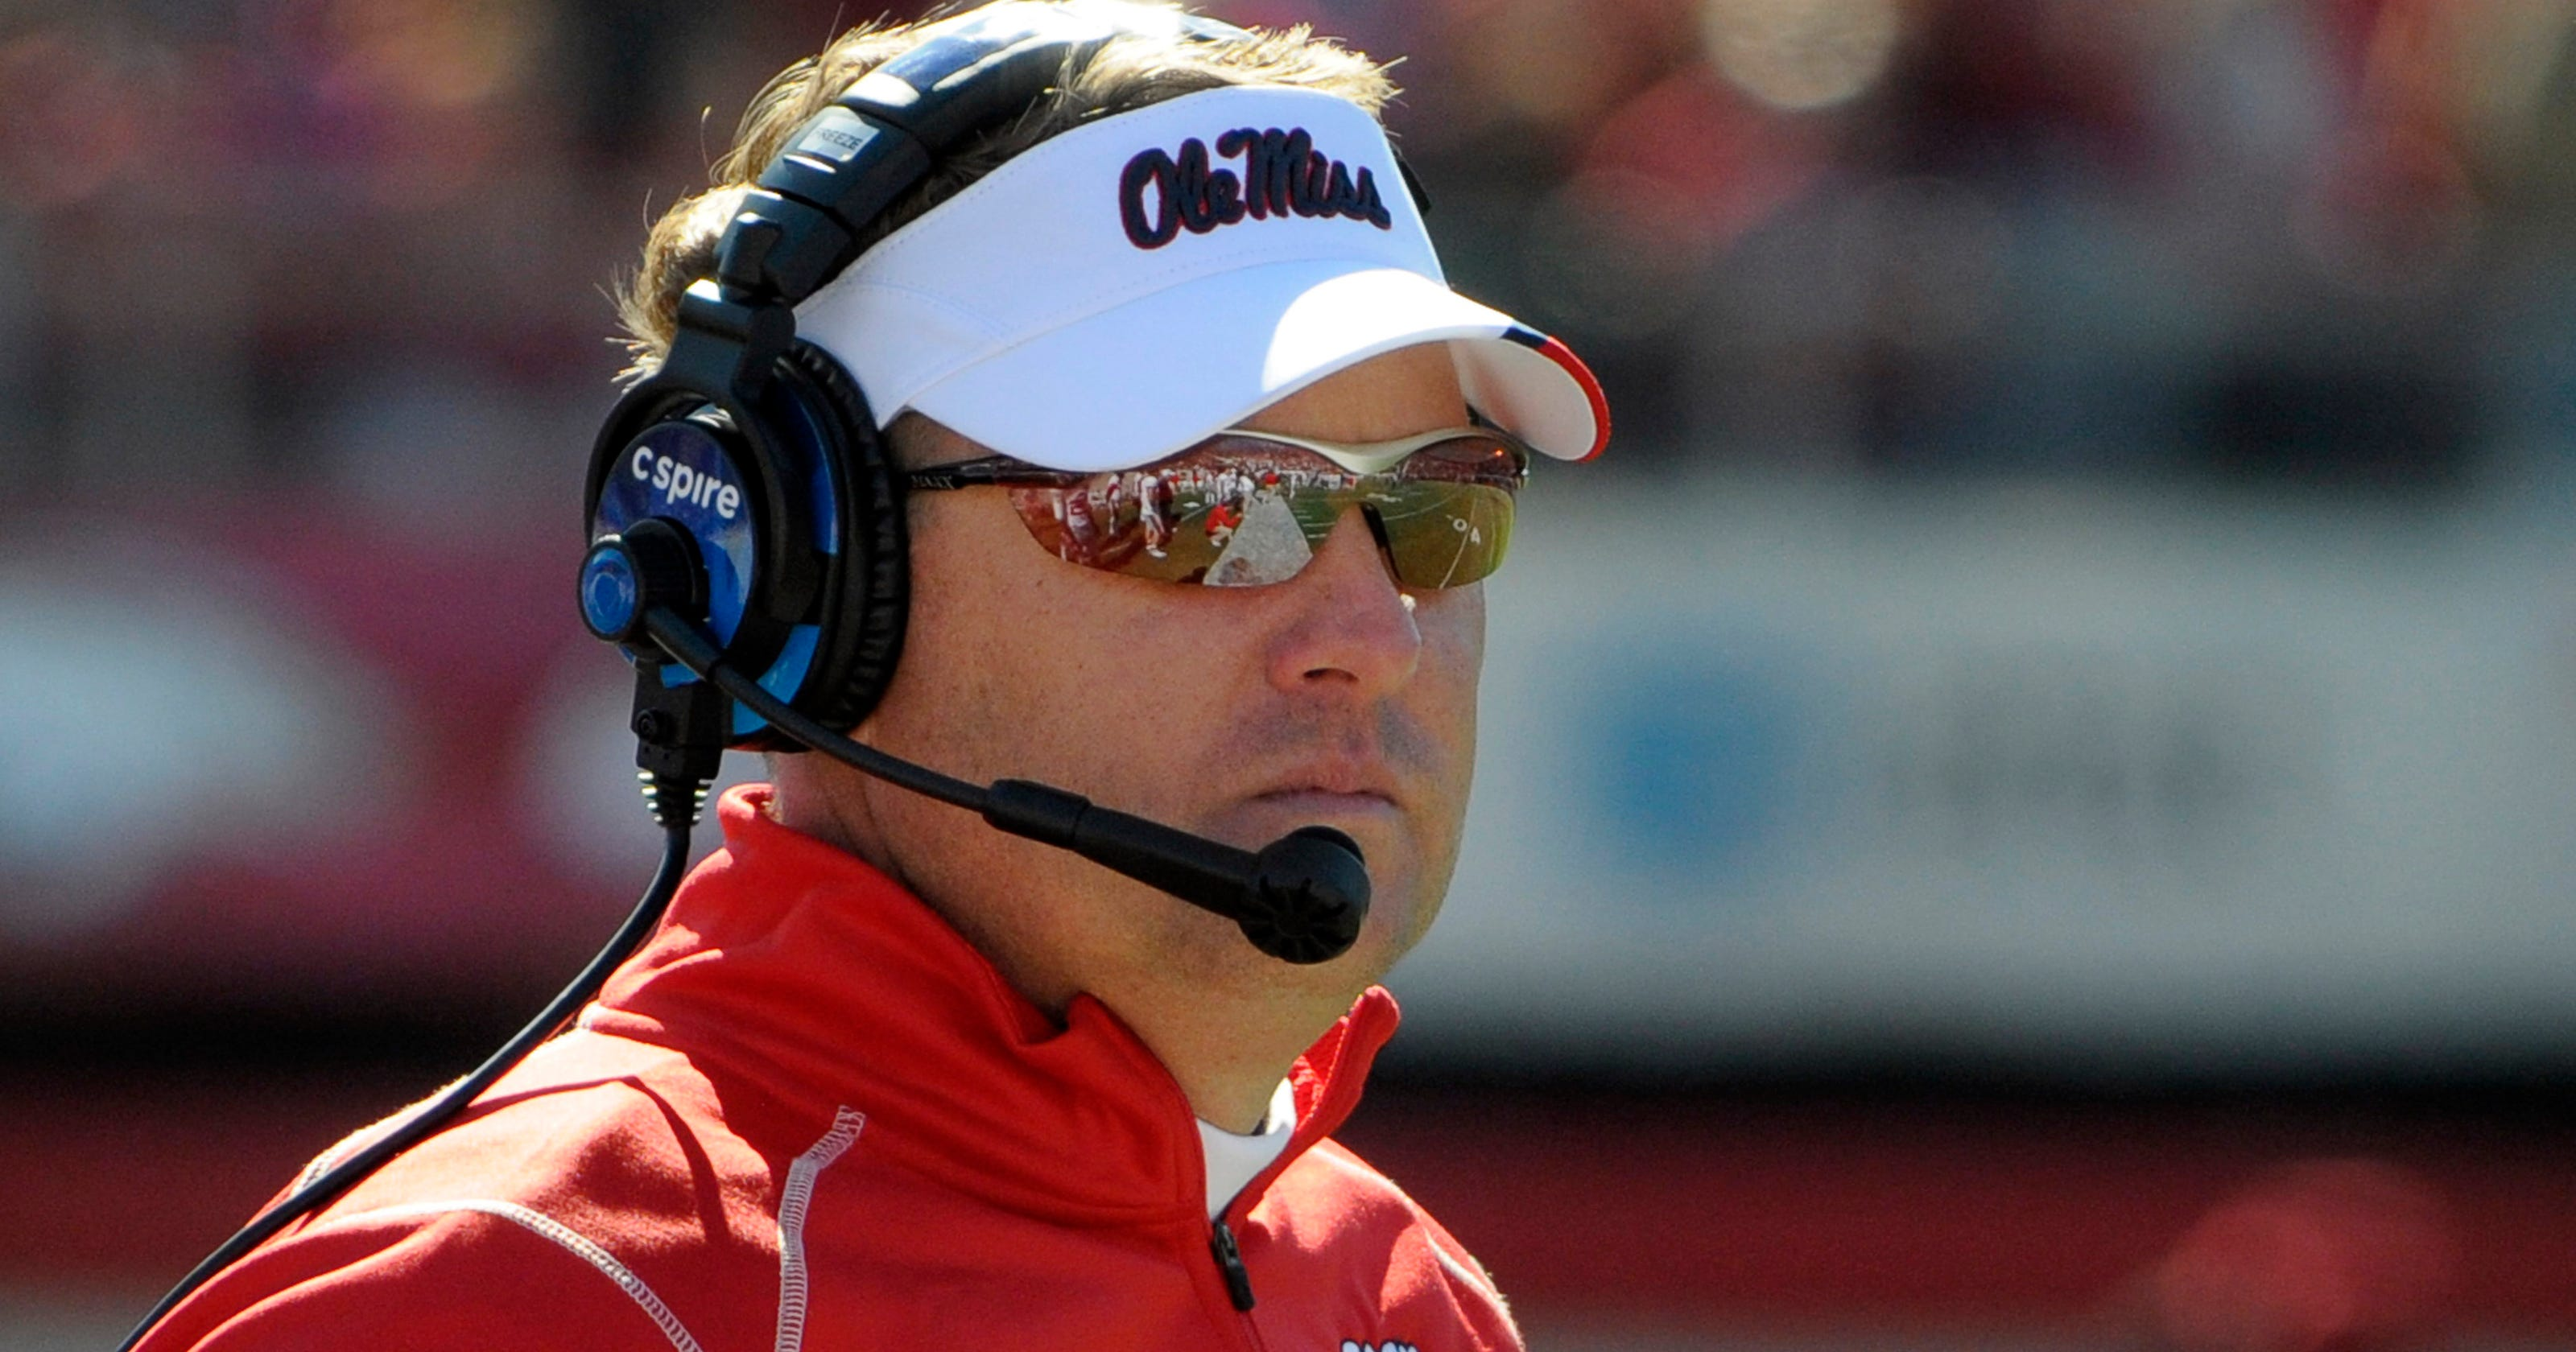 How Much Money Is Hugh Freeze Leaving After Resignation